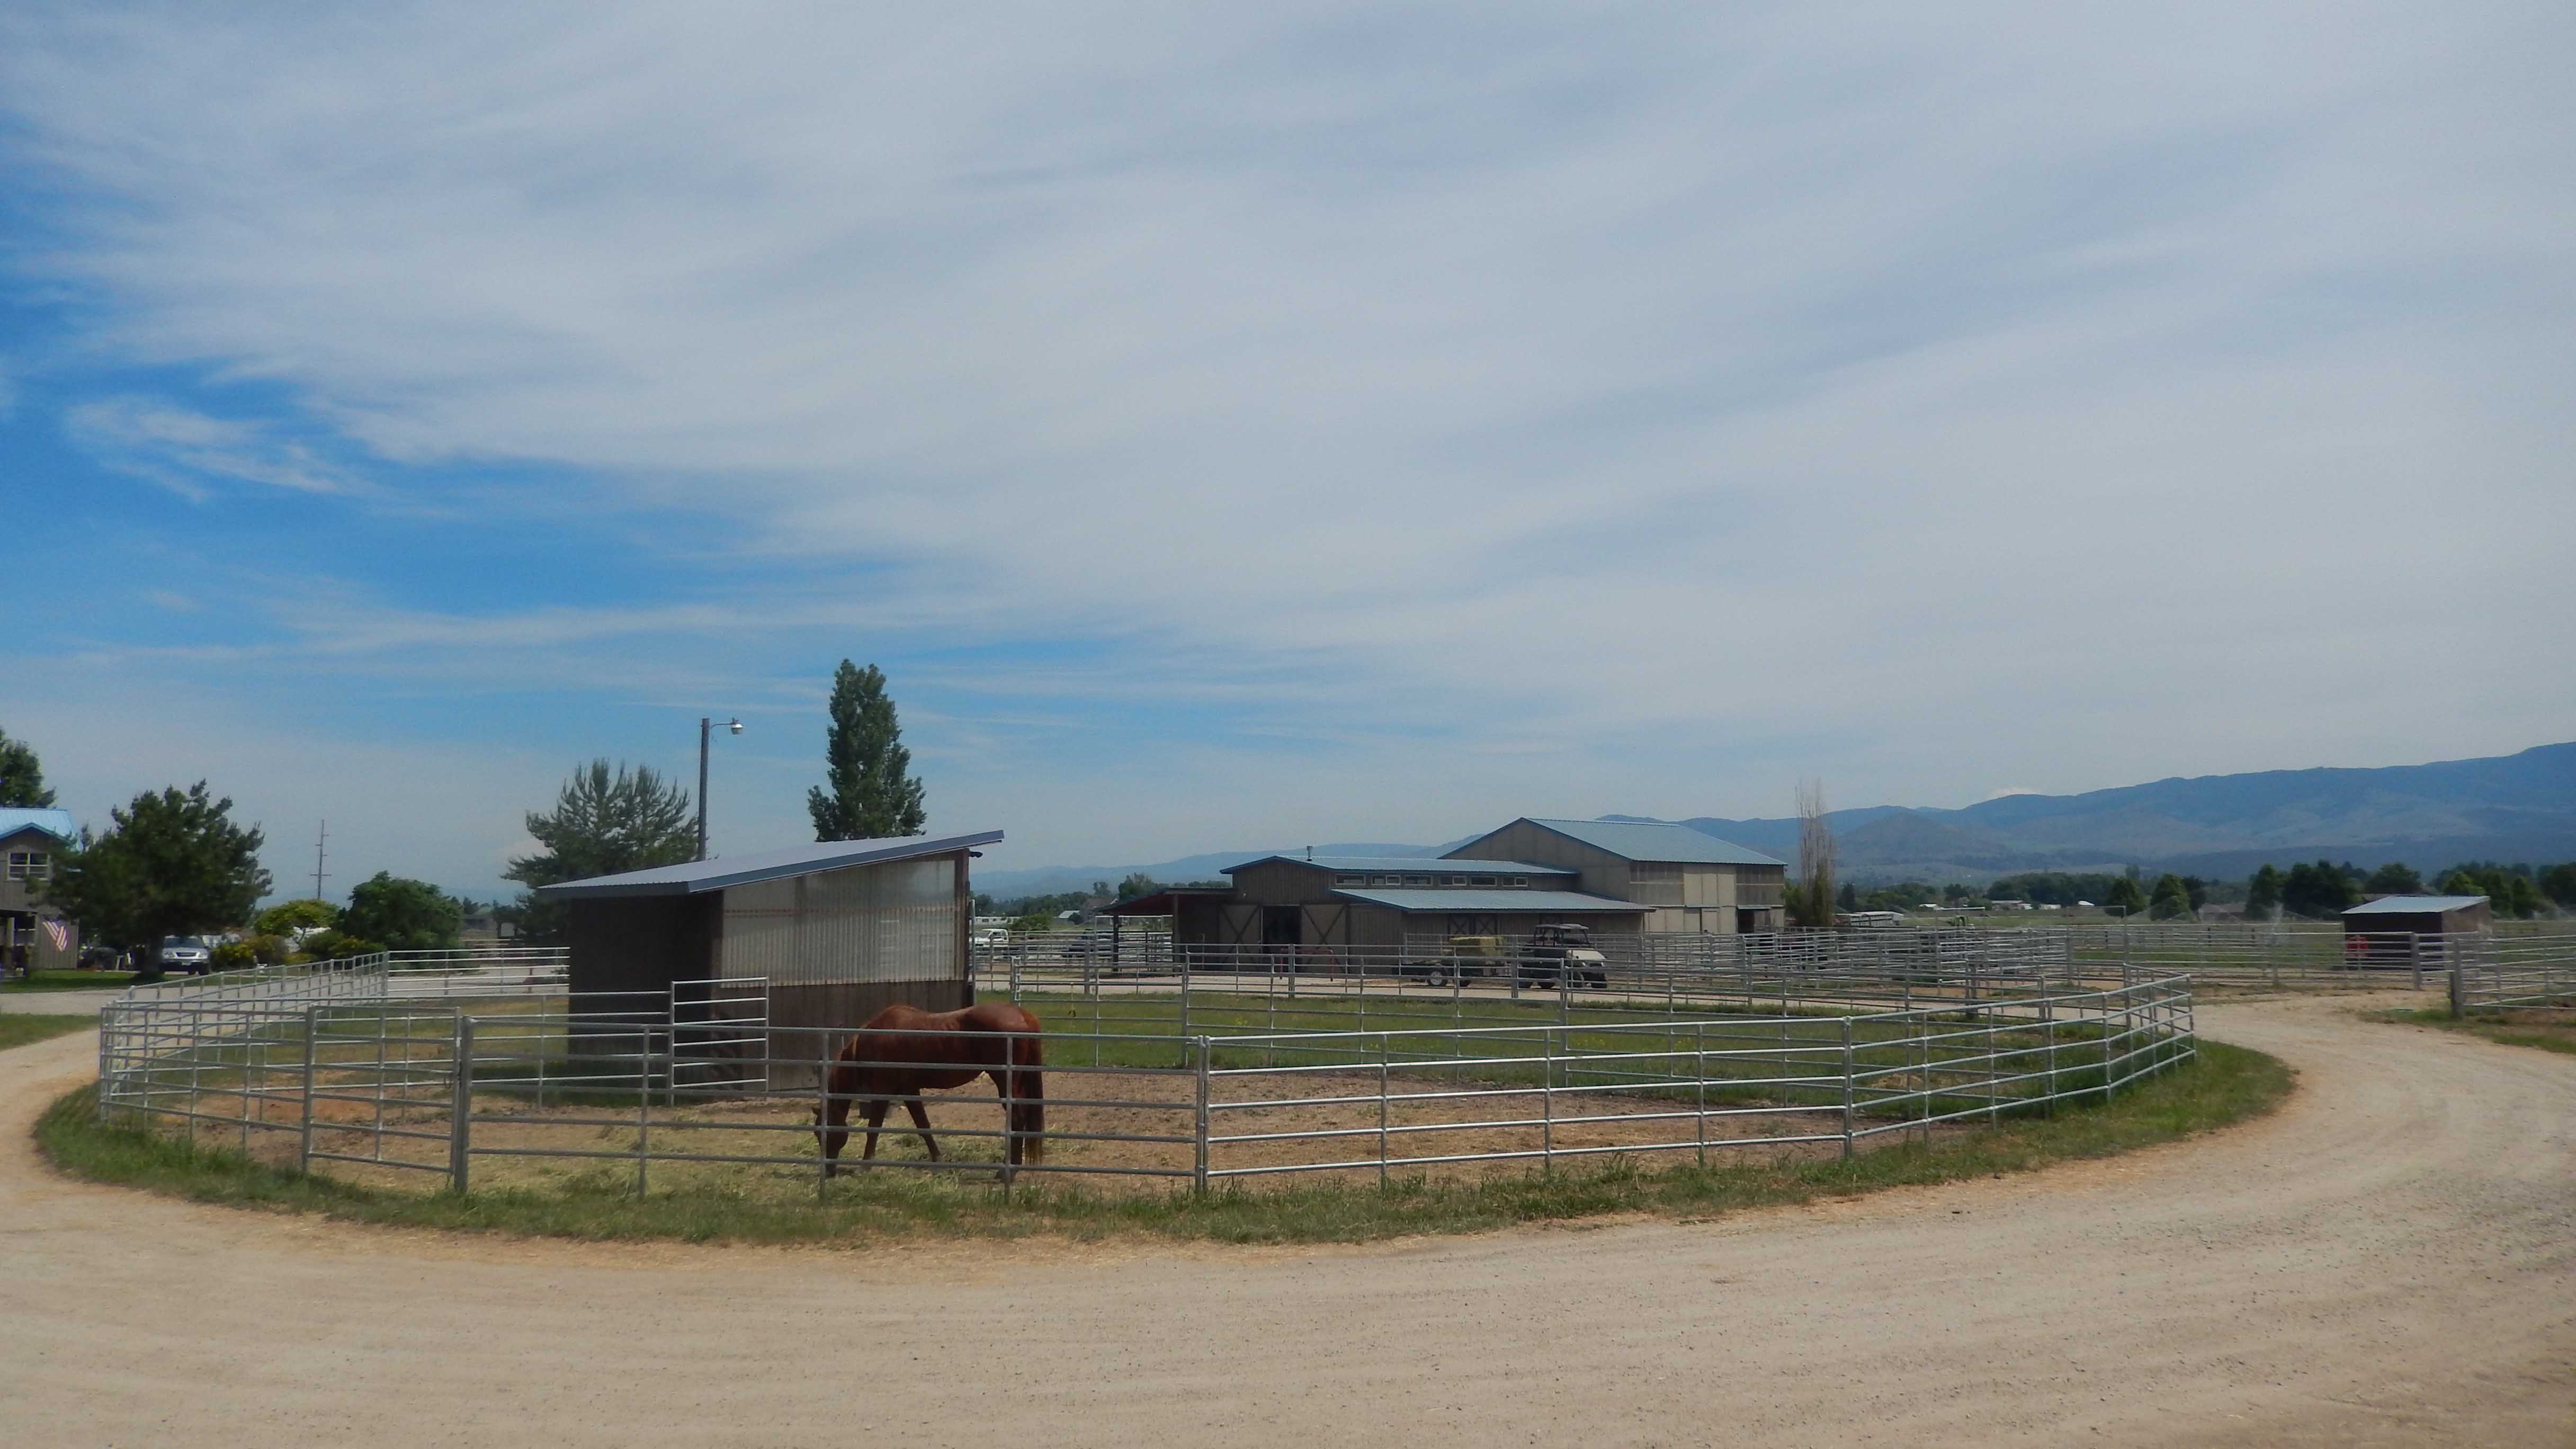 Vet with horse and corral (3)